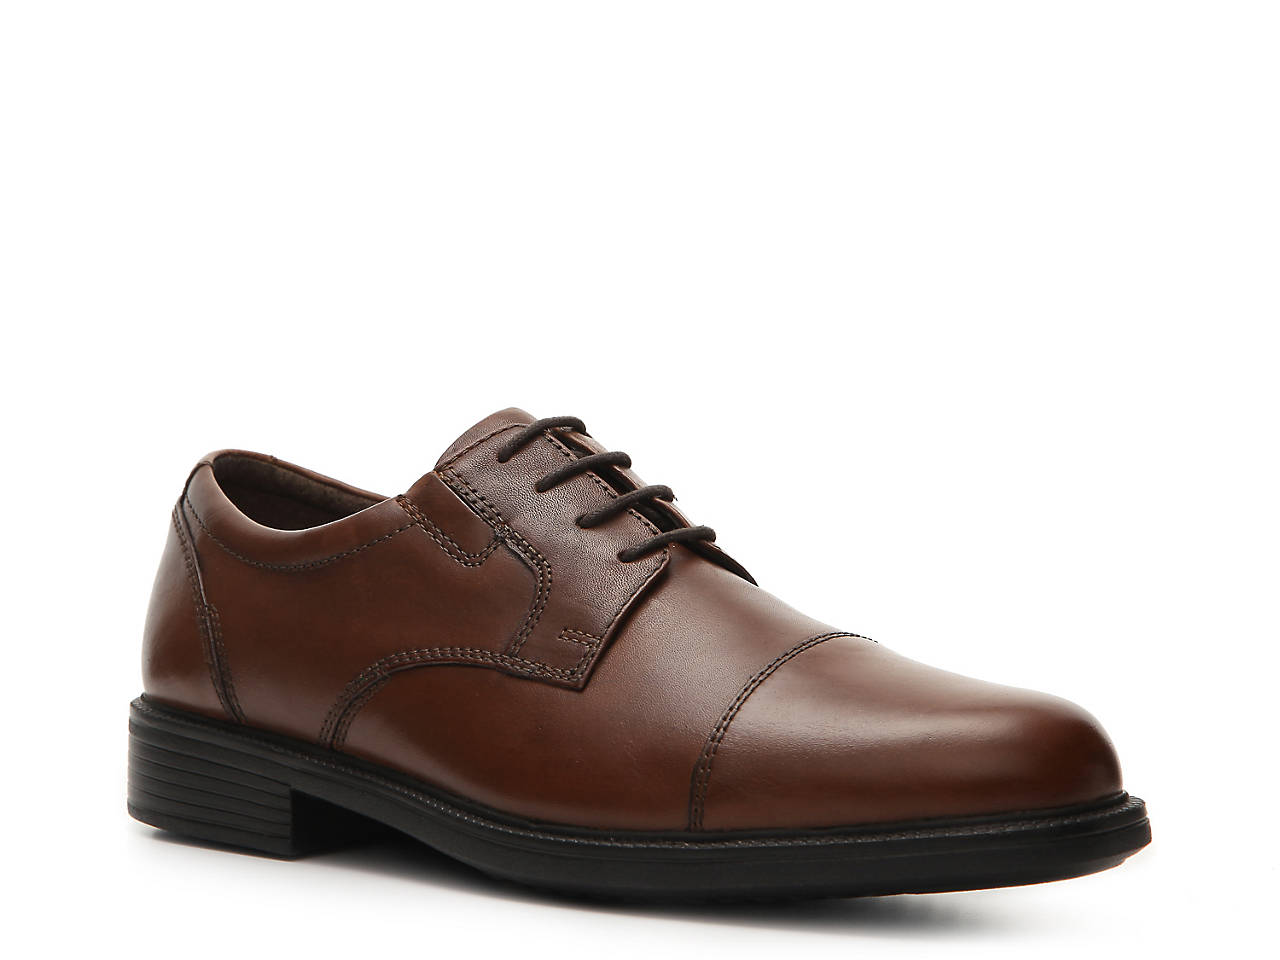 Bardwell Limit Cap Toe Oxford